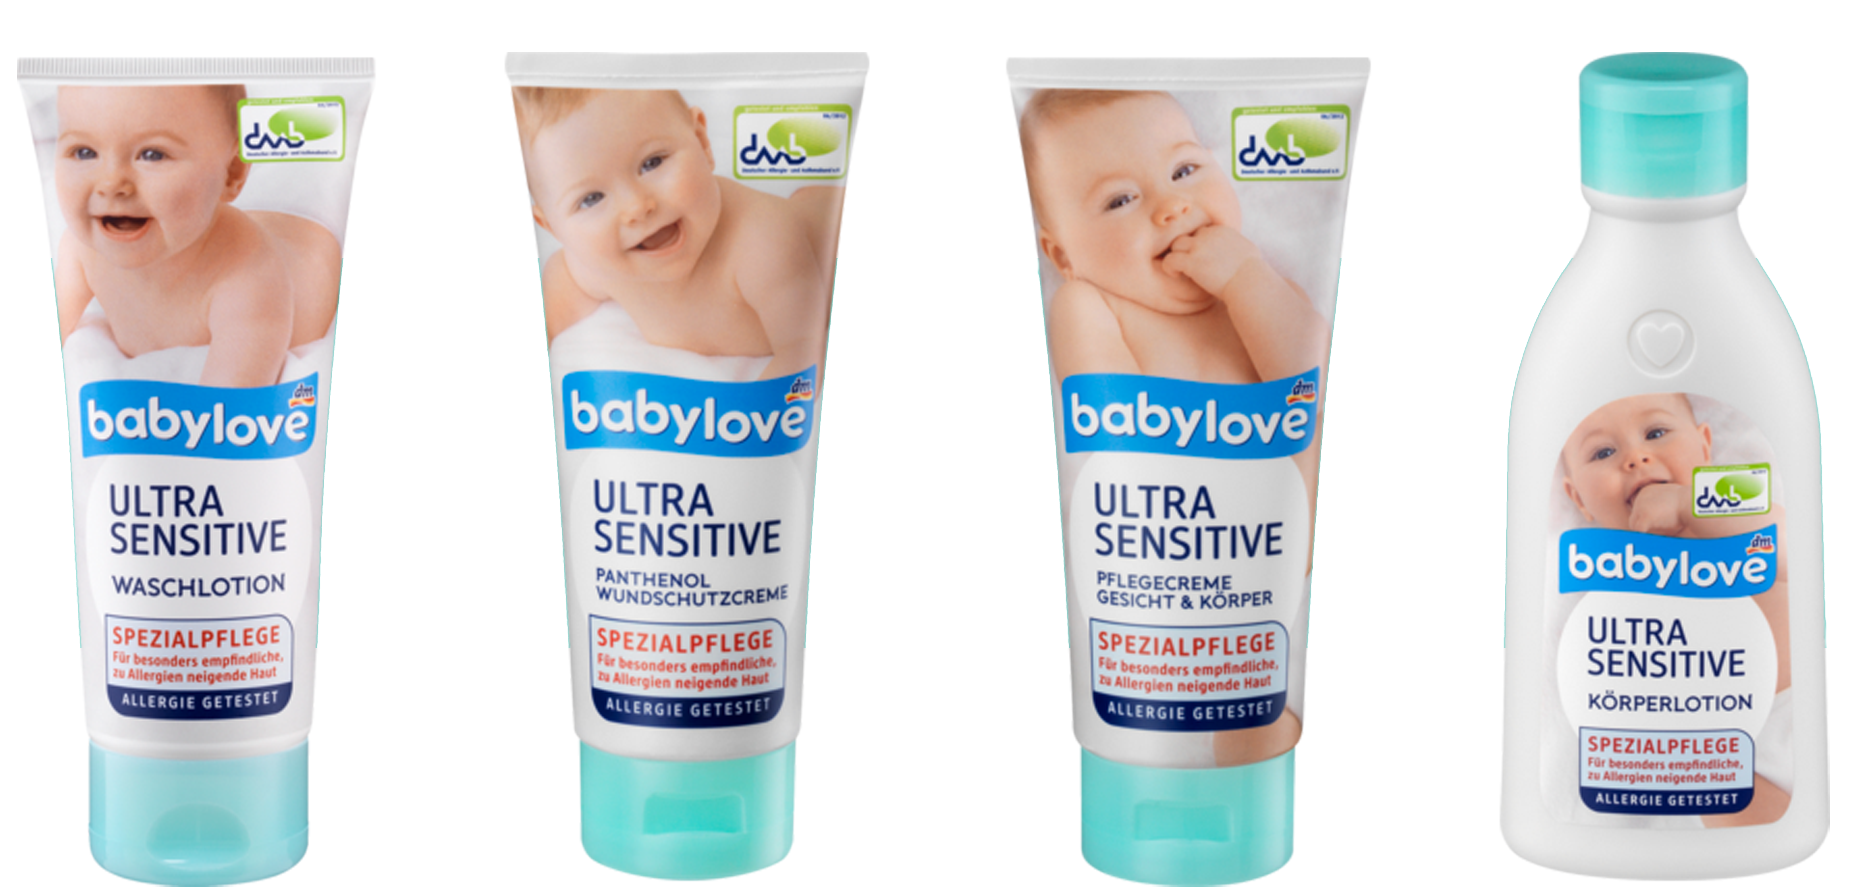 babylove_ultrasensitive1